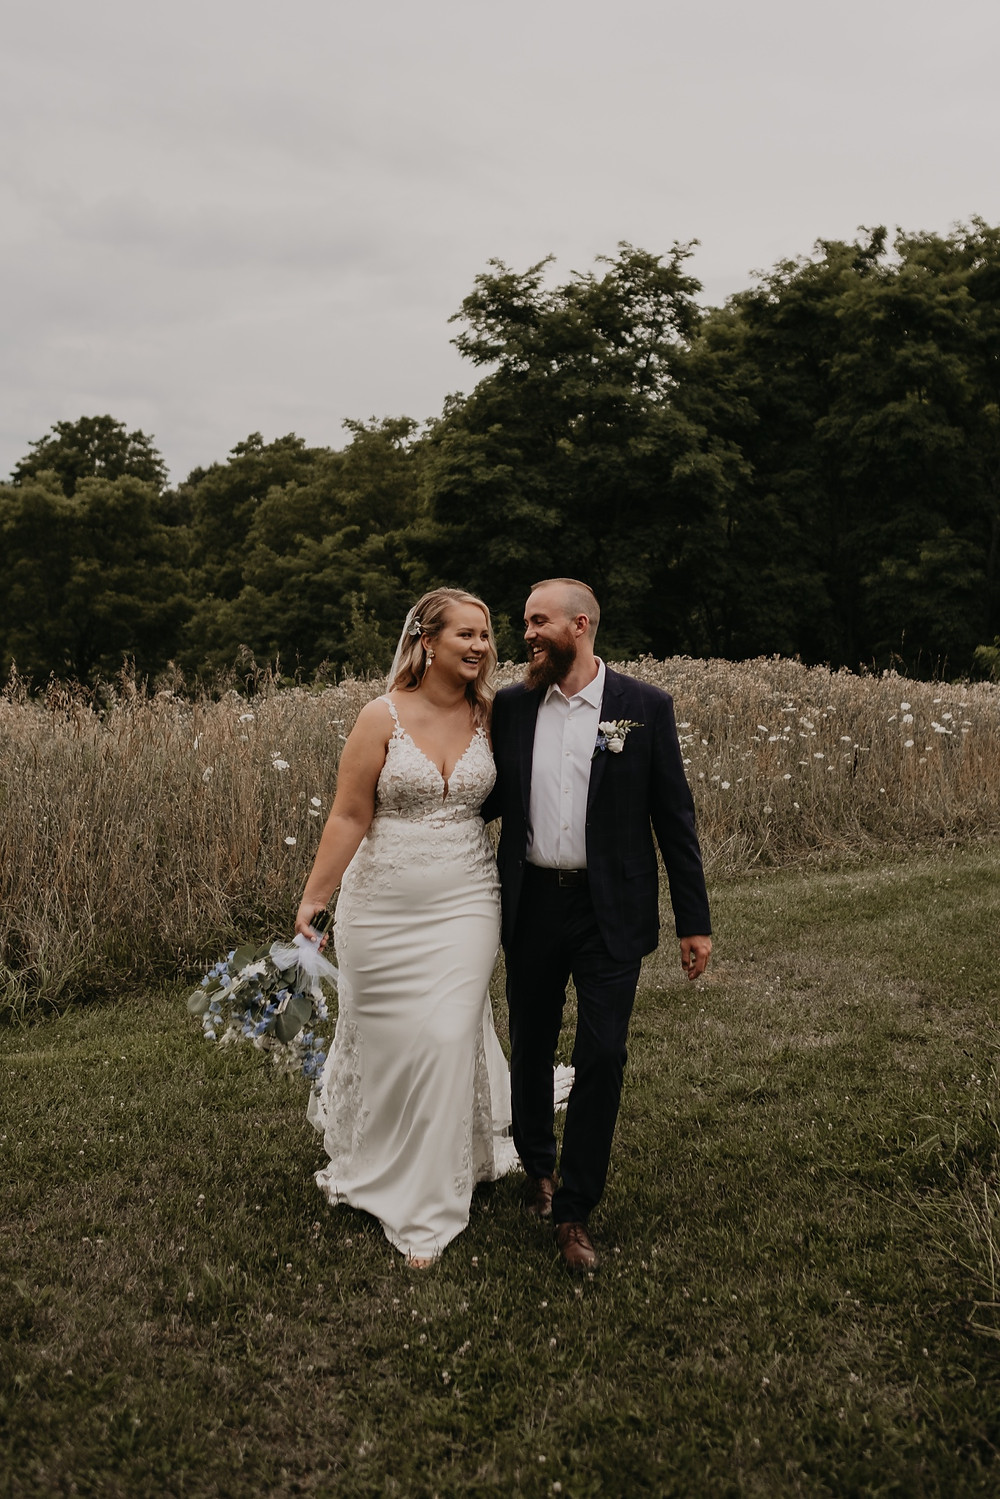 Bride and groom walking through field in Metro Detroit. Photographed by Nicole Leanne Photography.